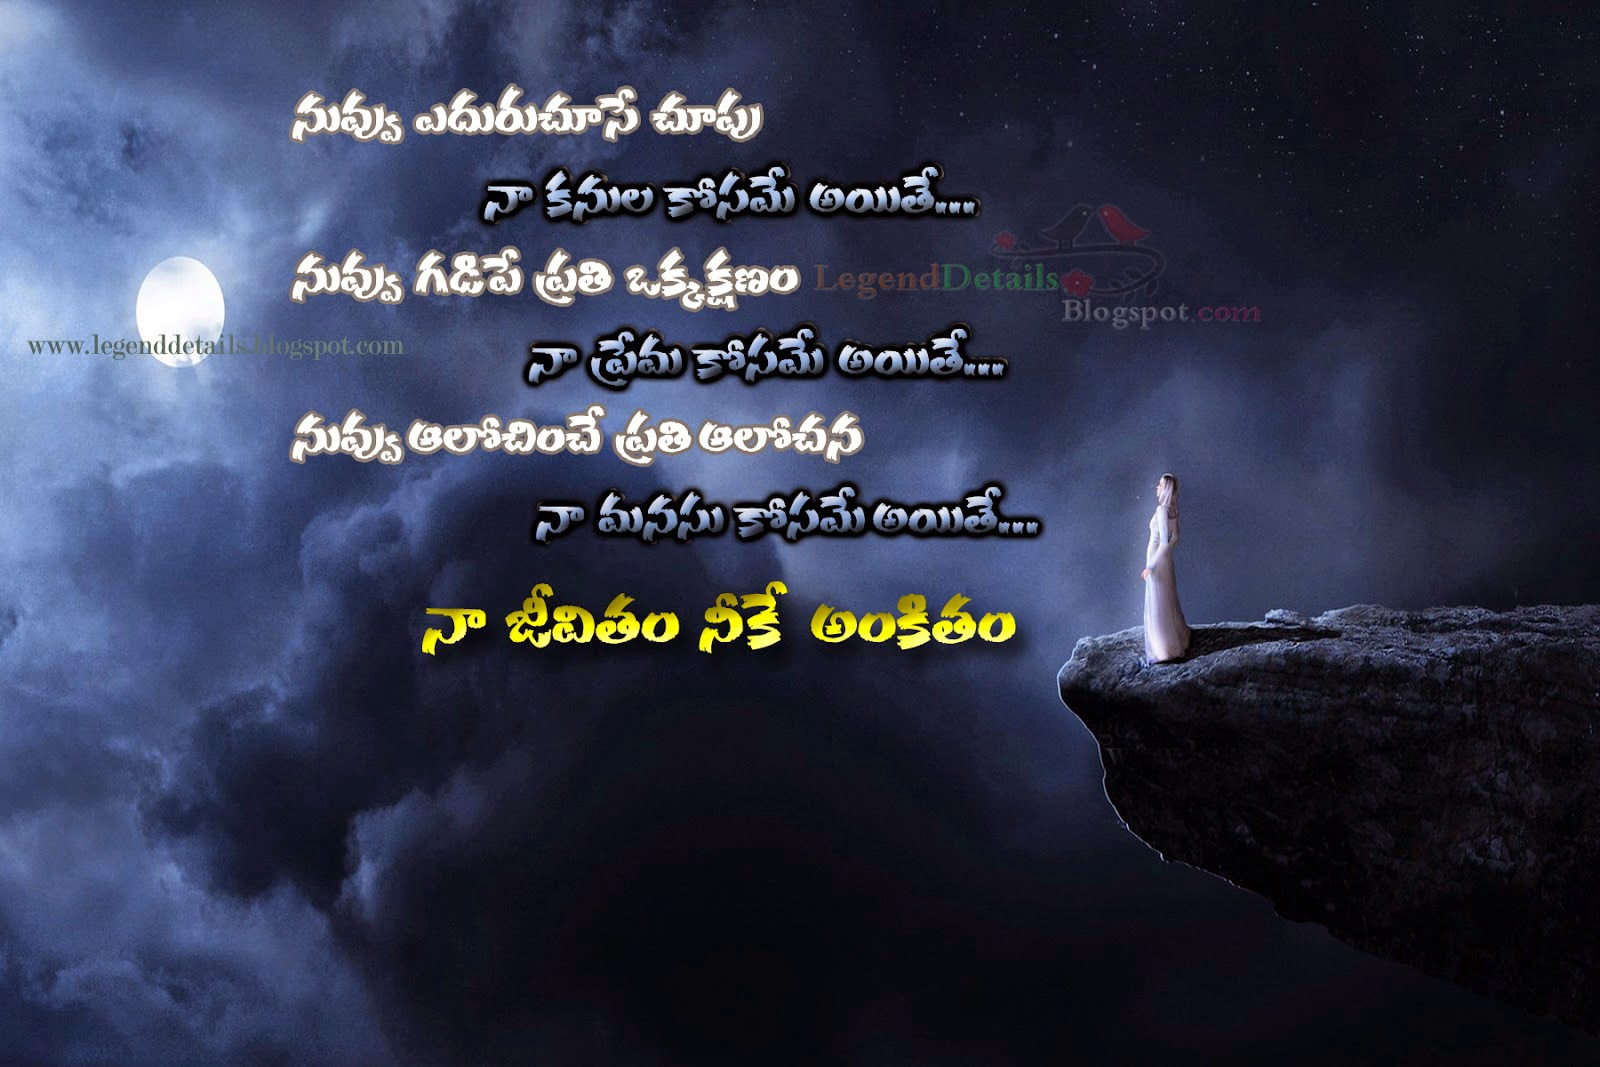 My Heart Heart Touching Telugu Love Poetry Legendary Quotes